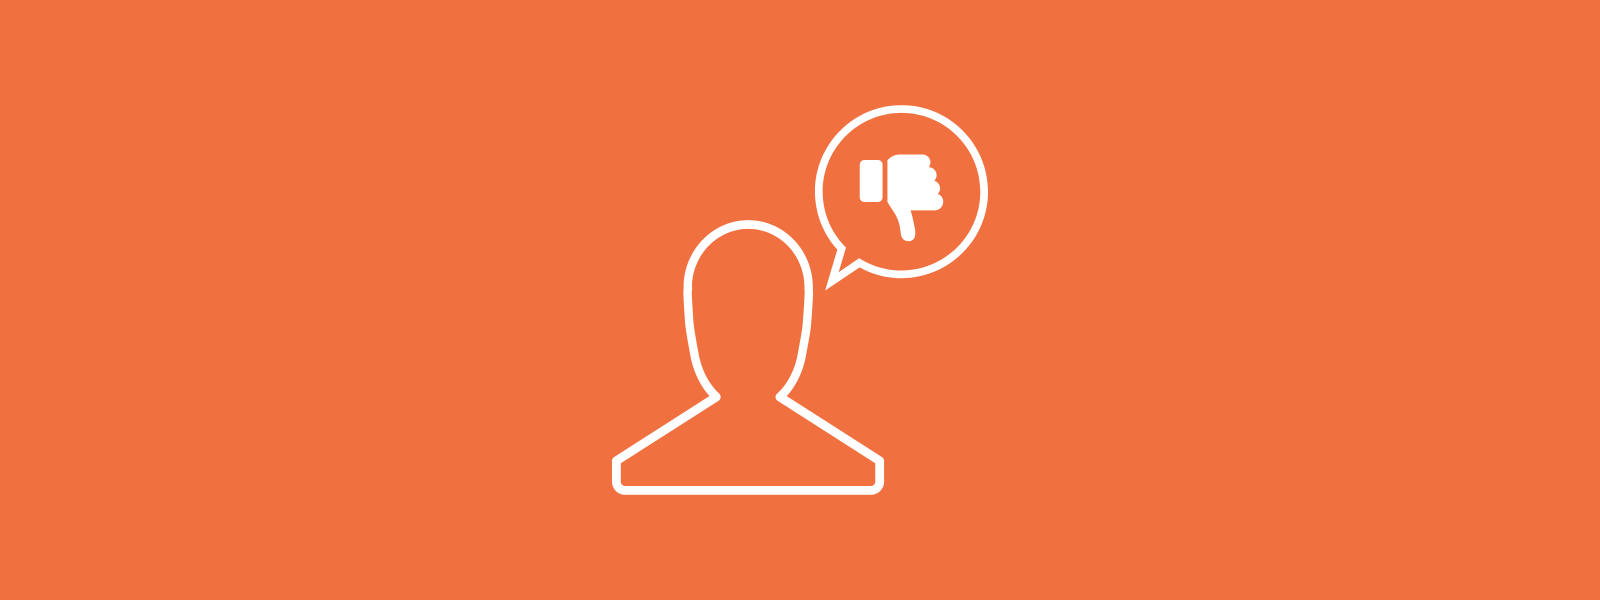 Icon background of person expressing disagreement